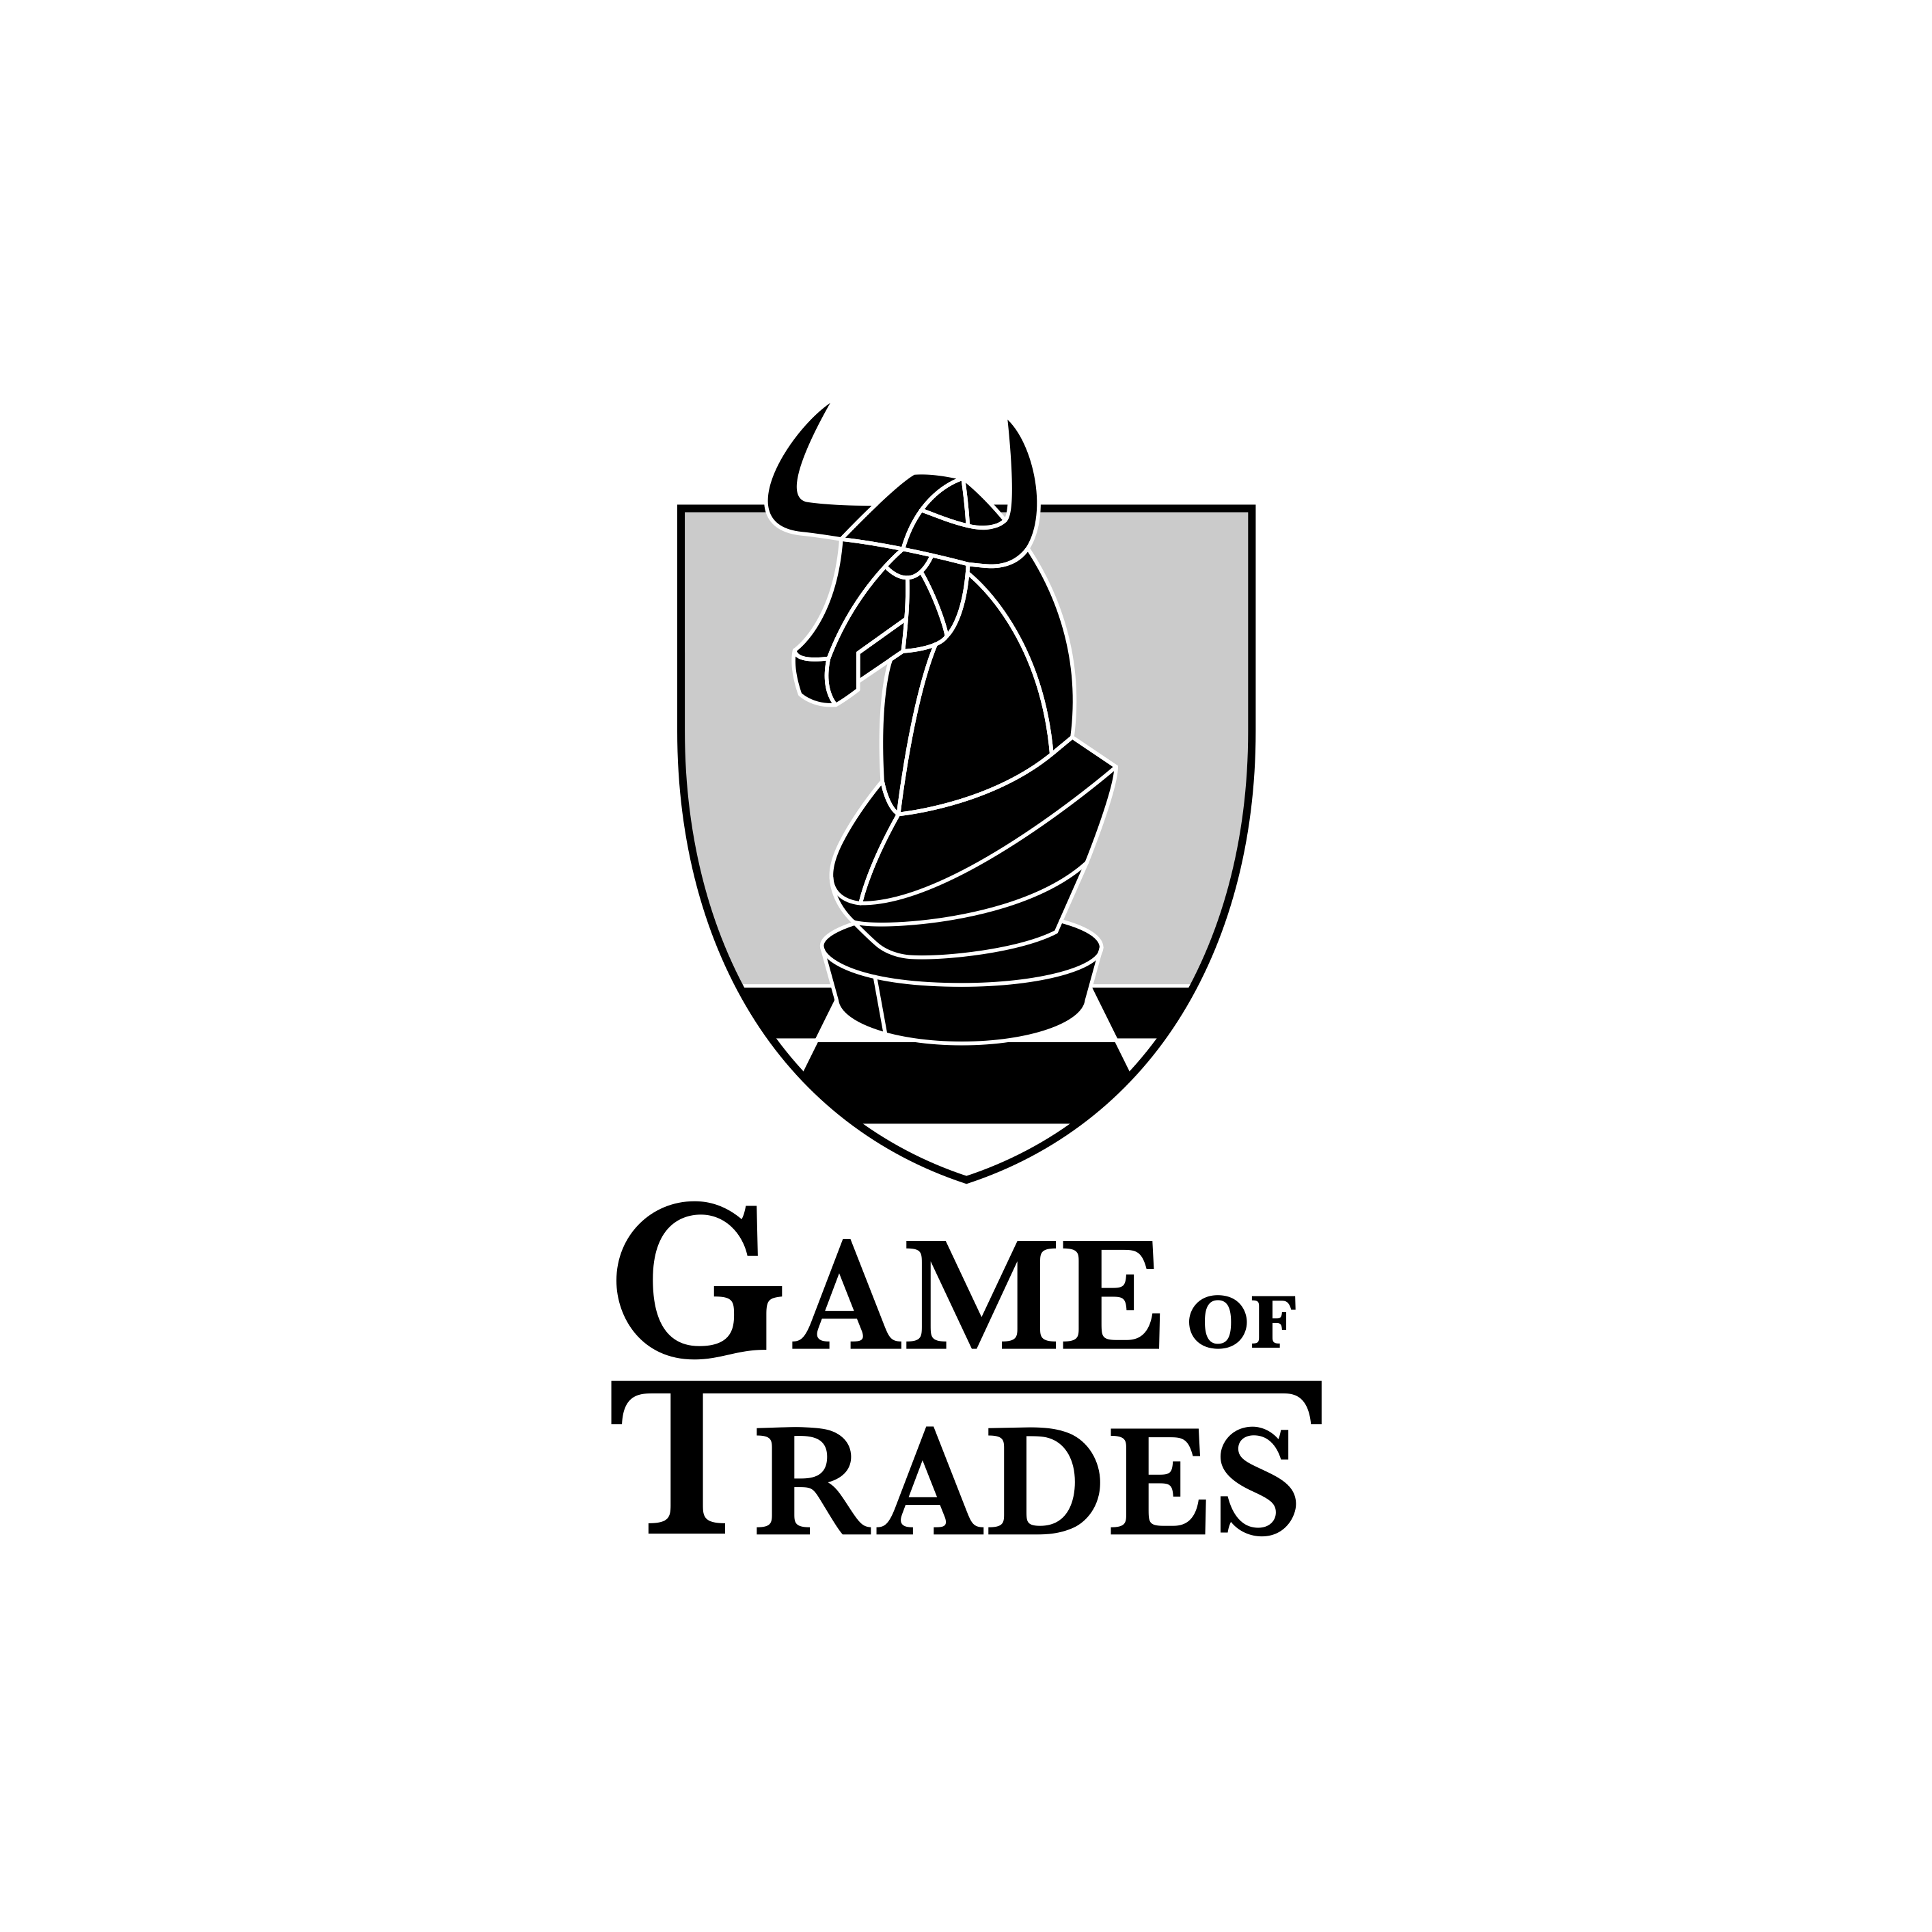 Game of Trades jobs